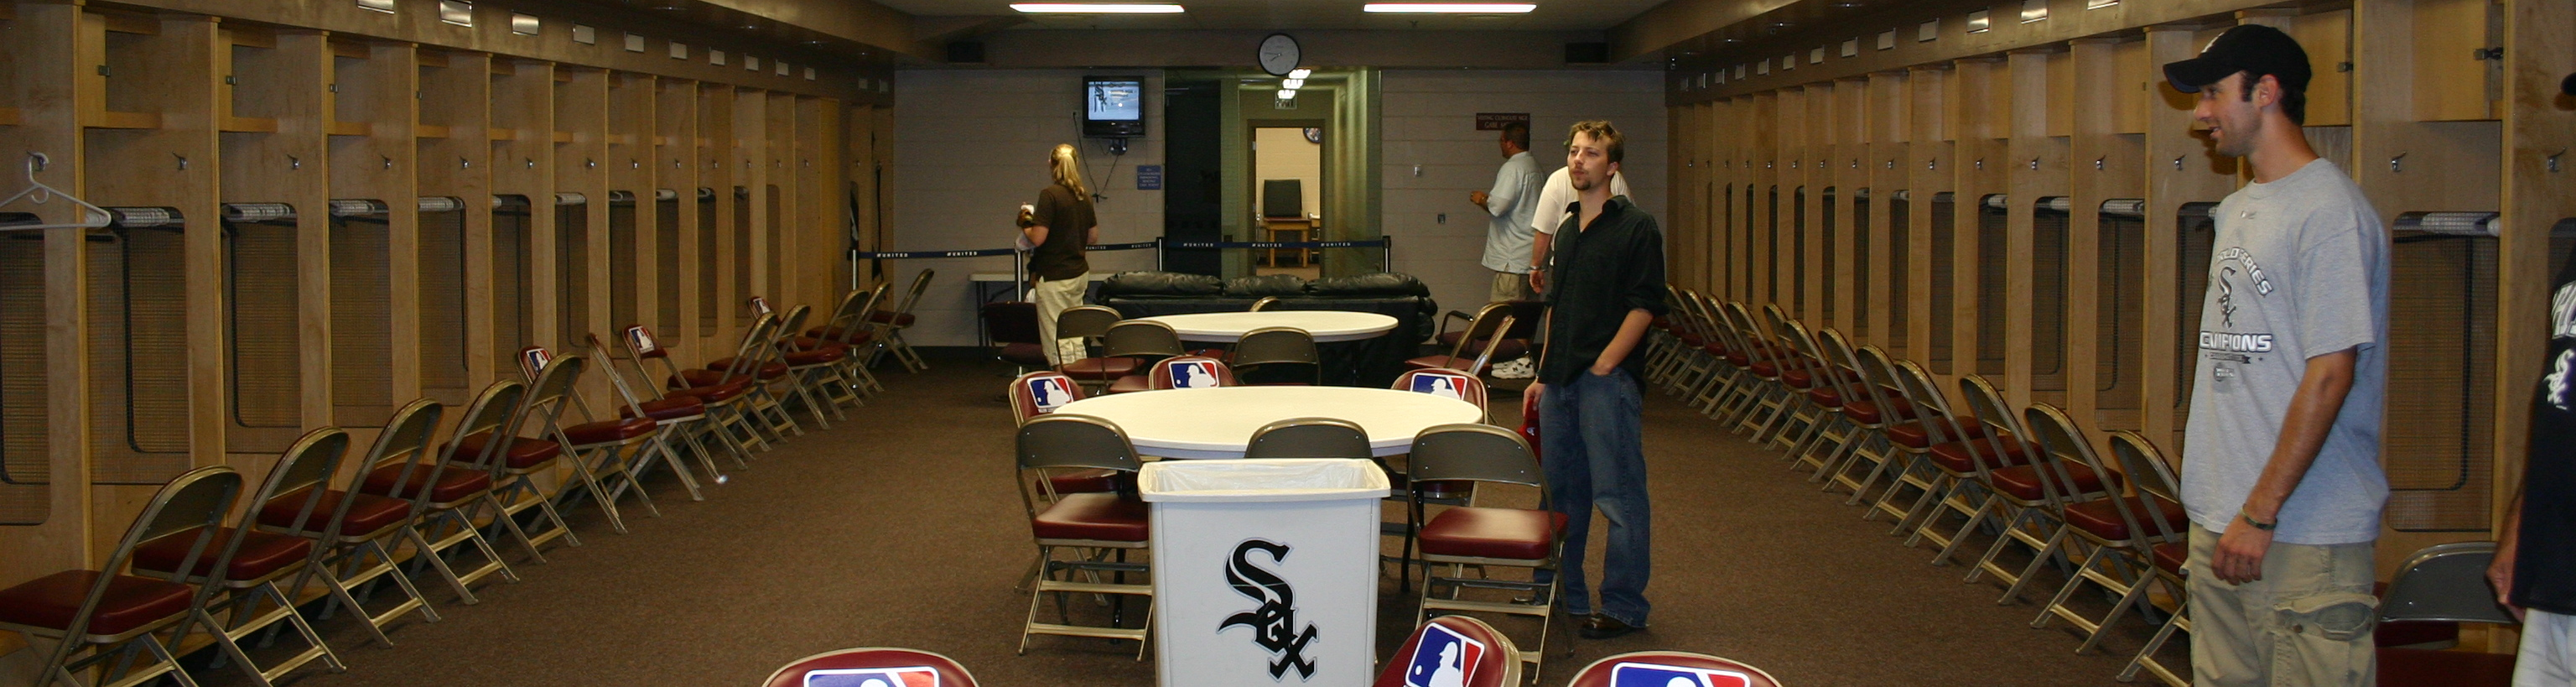 US_Cellular_Field_Clubhouse.jpg